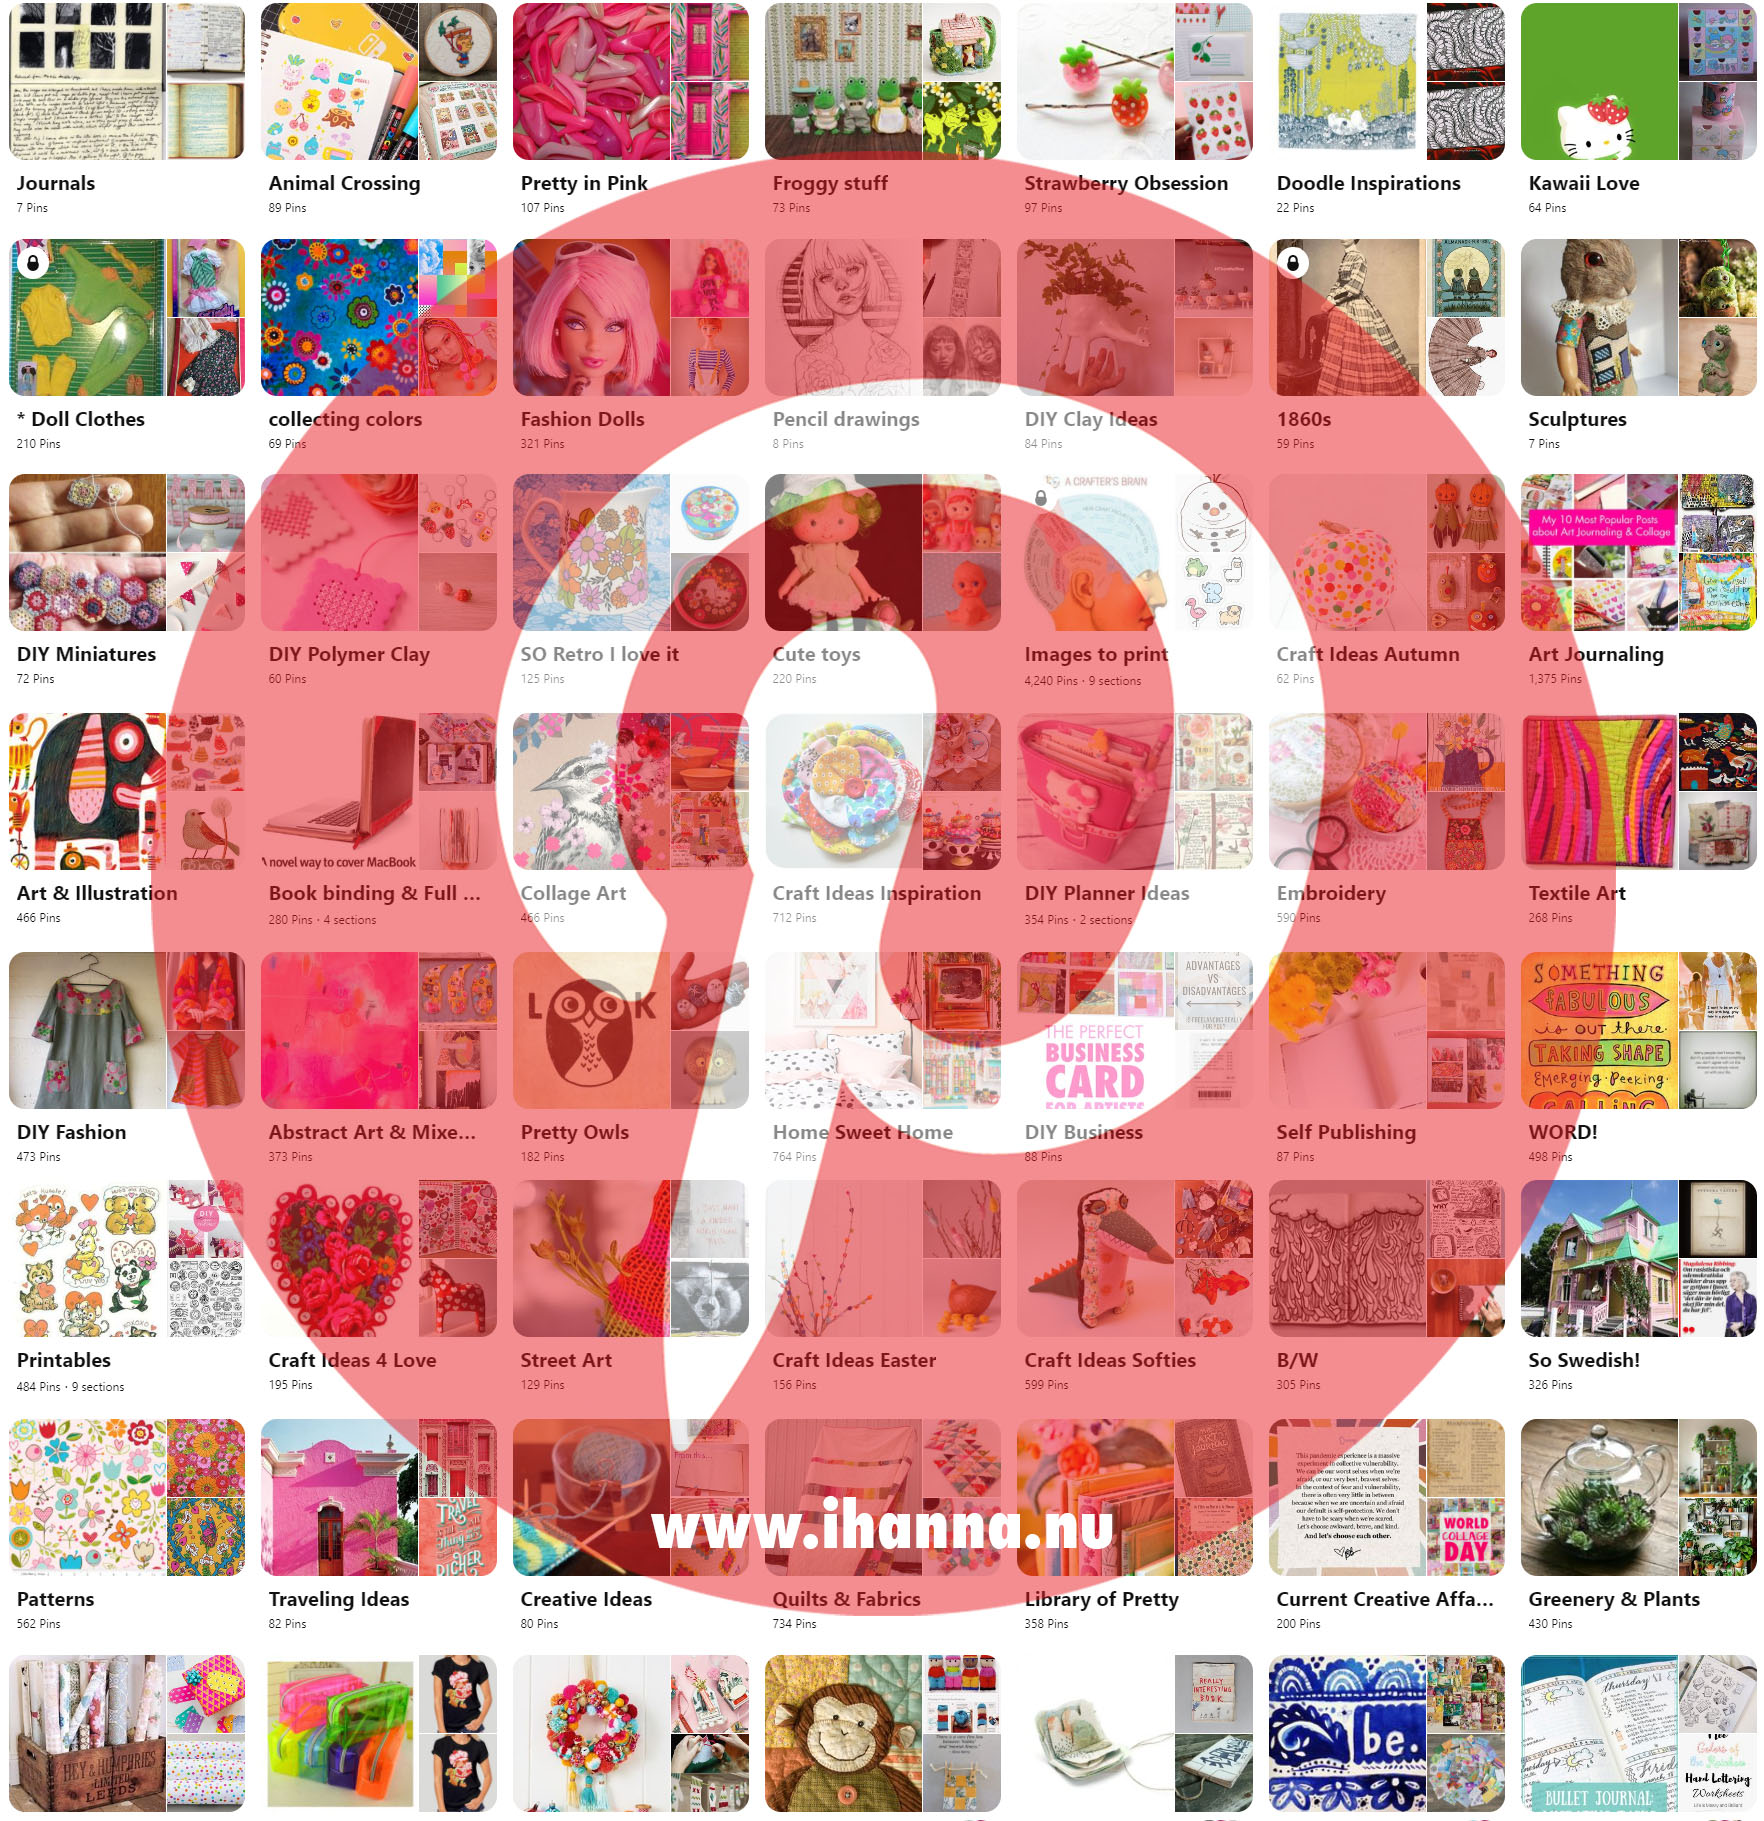 iHanna on Pinterest - documenting my interests in a way that is not very tangible